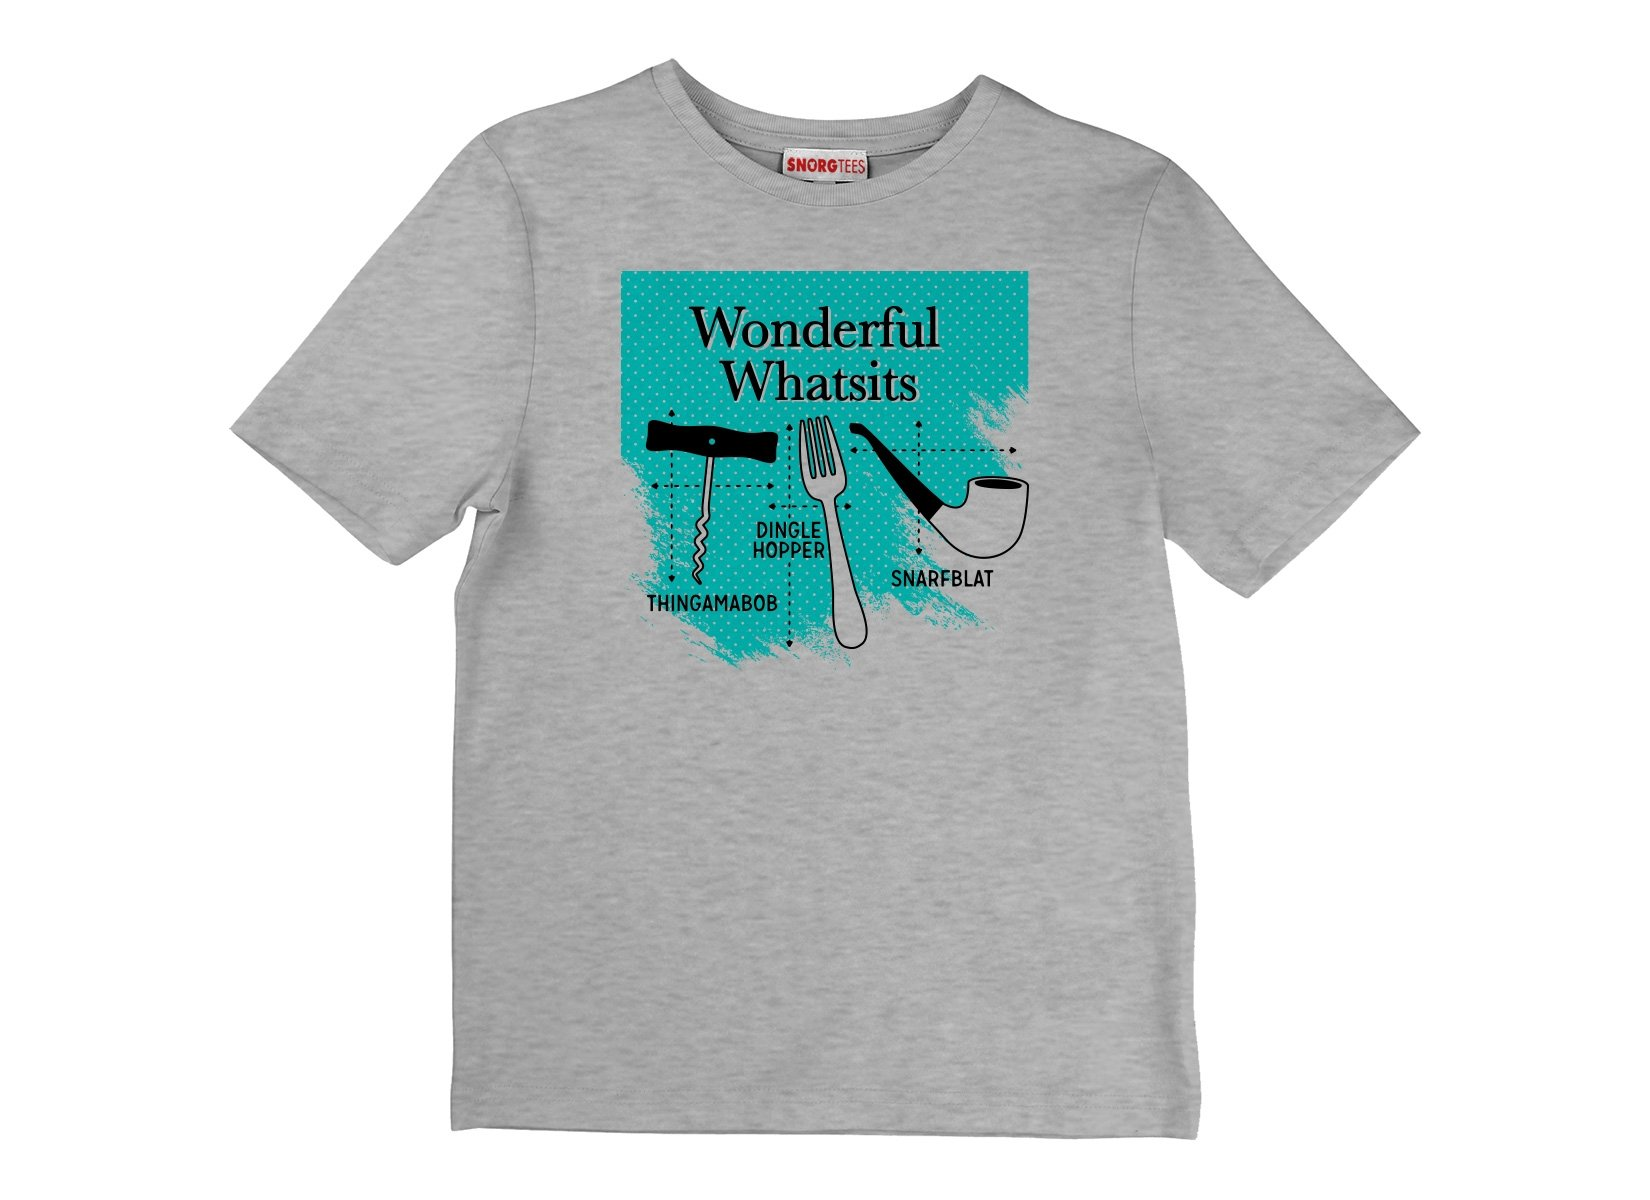 Wonderful Whatsits on Kids T-Shirt